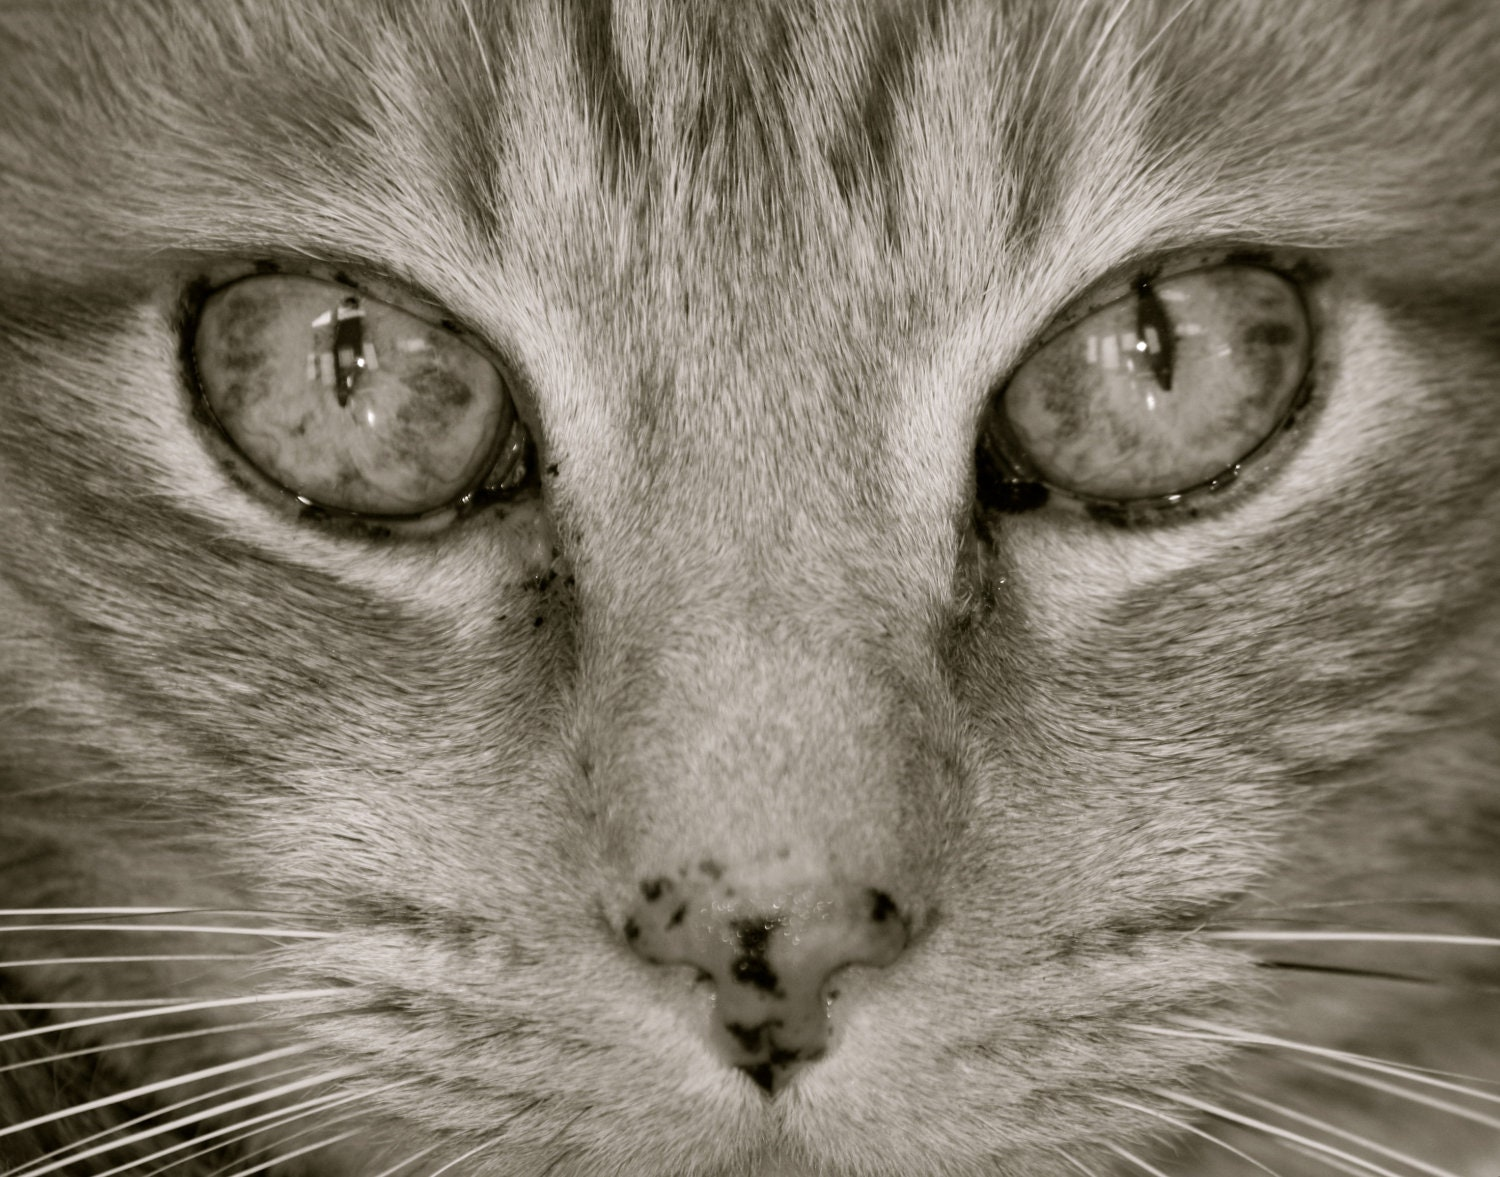 Cat Eyes, Feline Cat Lover, Nicholas the Great, 5x5 Black and White Photograph, FPOE, POE